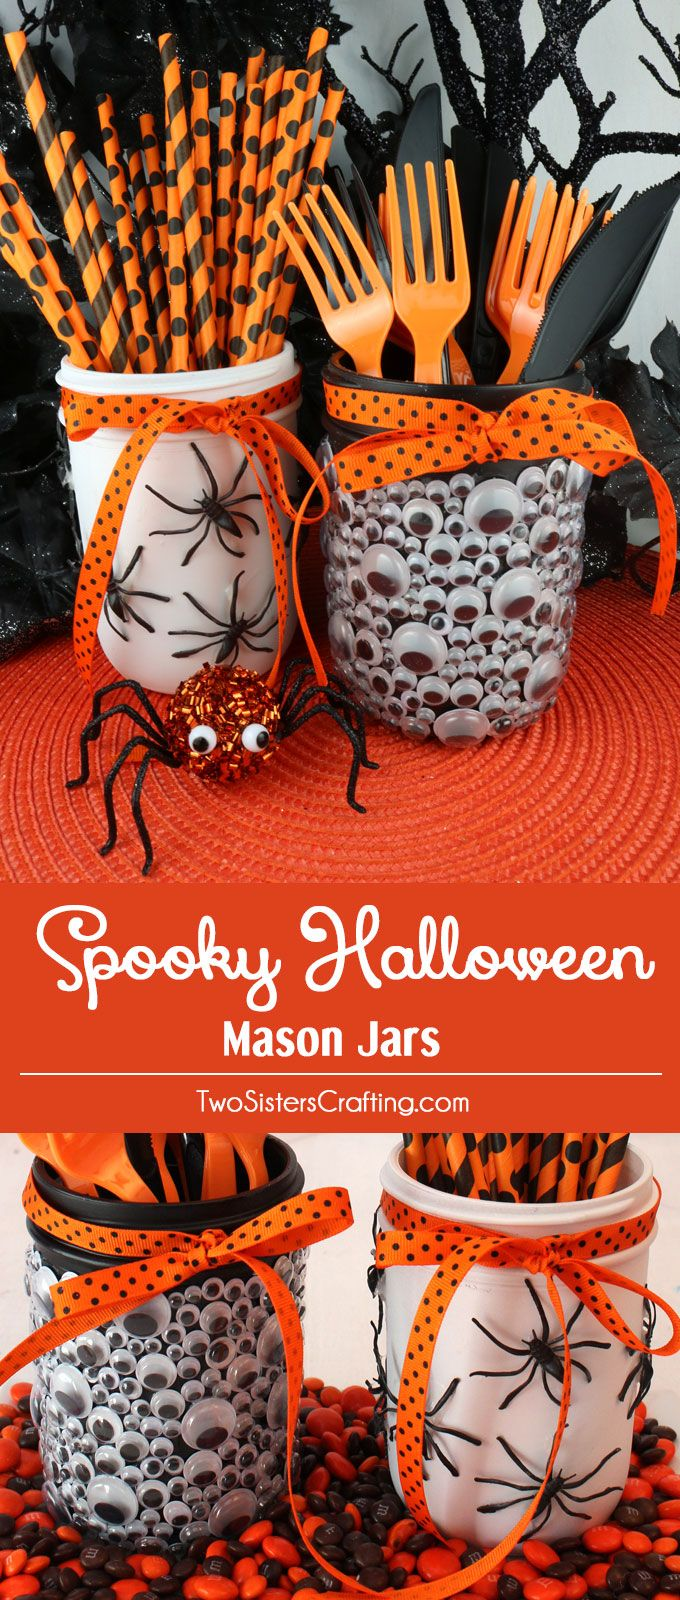 explore fun halloween decorations and more - Halloween Fun Images